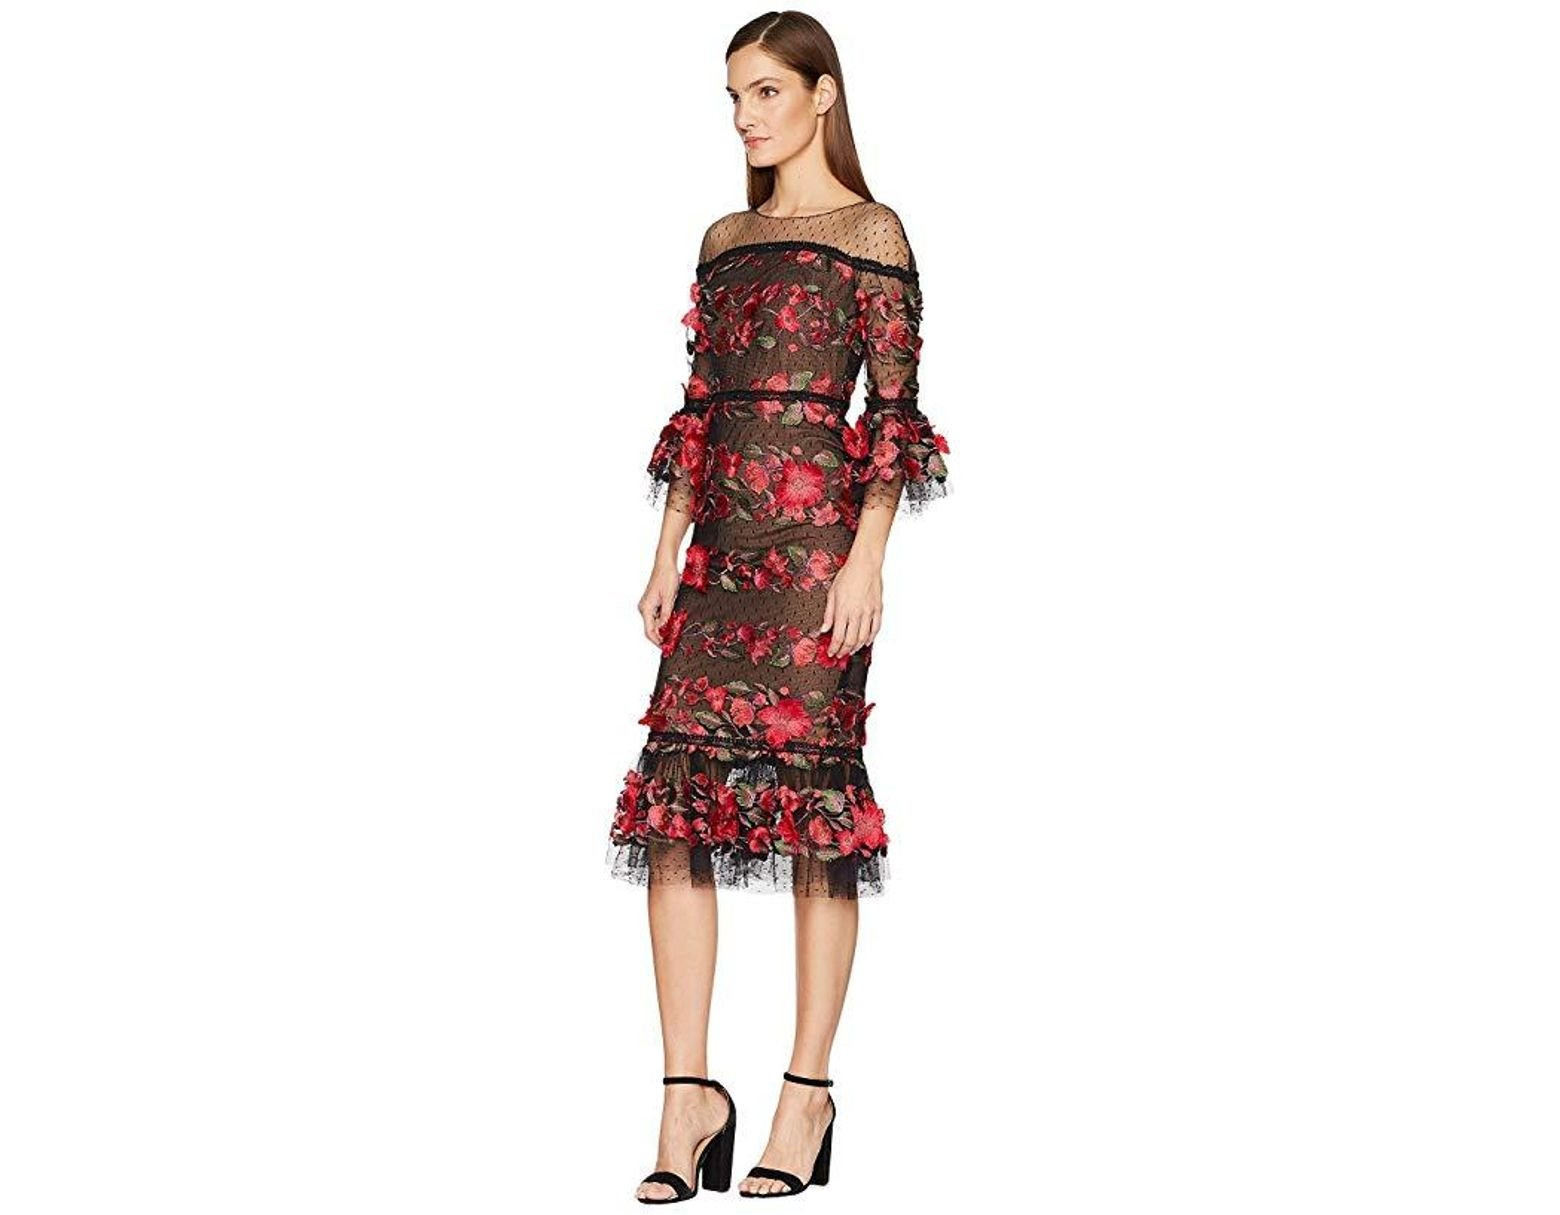 f10c537d Marchesa notte 3/4 Length Bell Sleeve Fringe Floral Embroidered Cocktail  With Point D'esprit Ruffle Hem in Black - Lyst